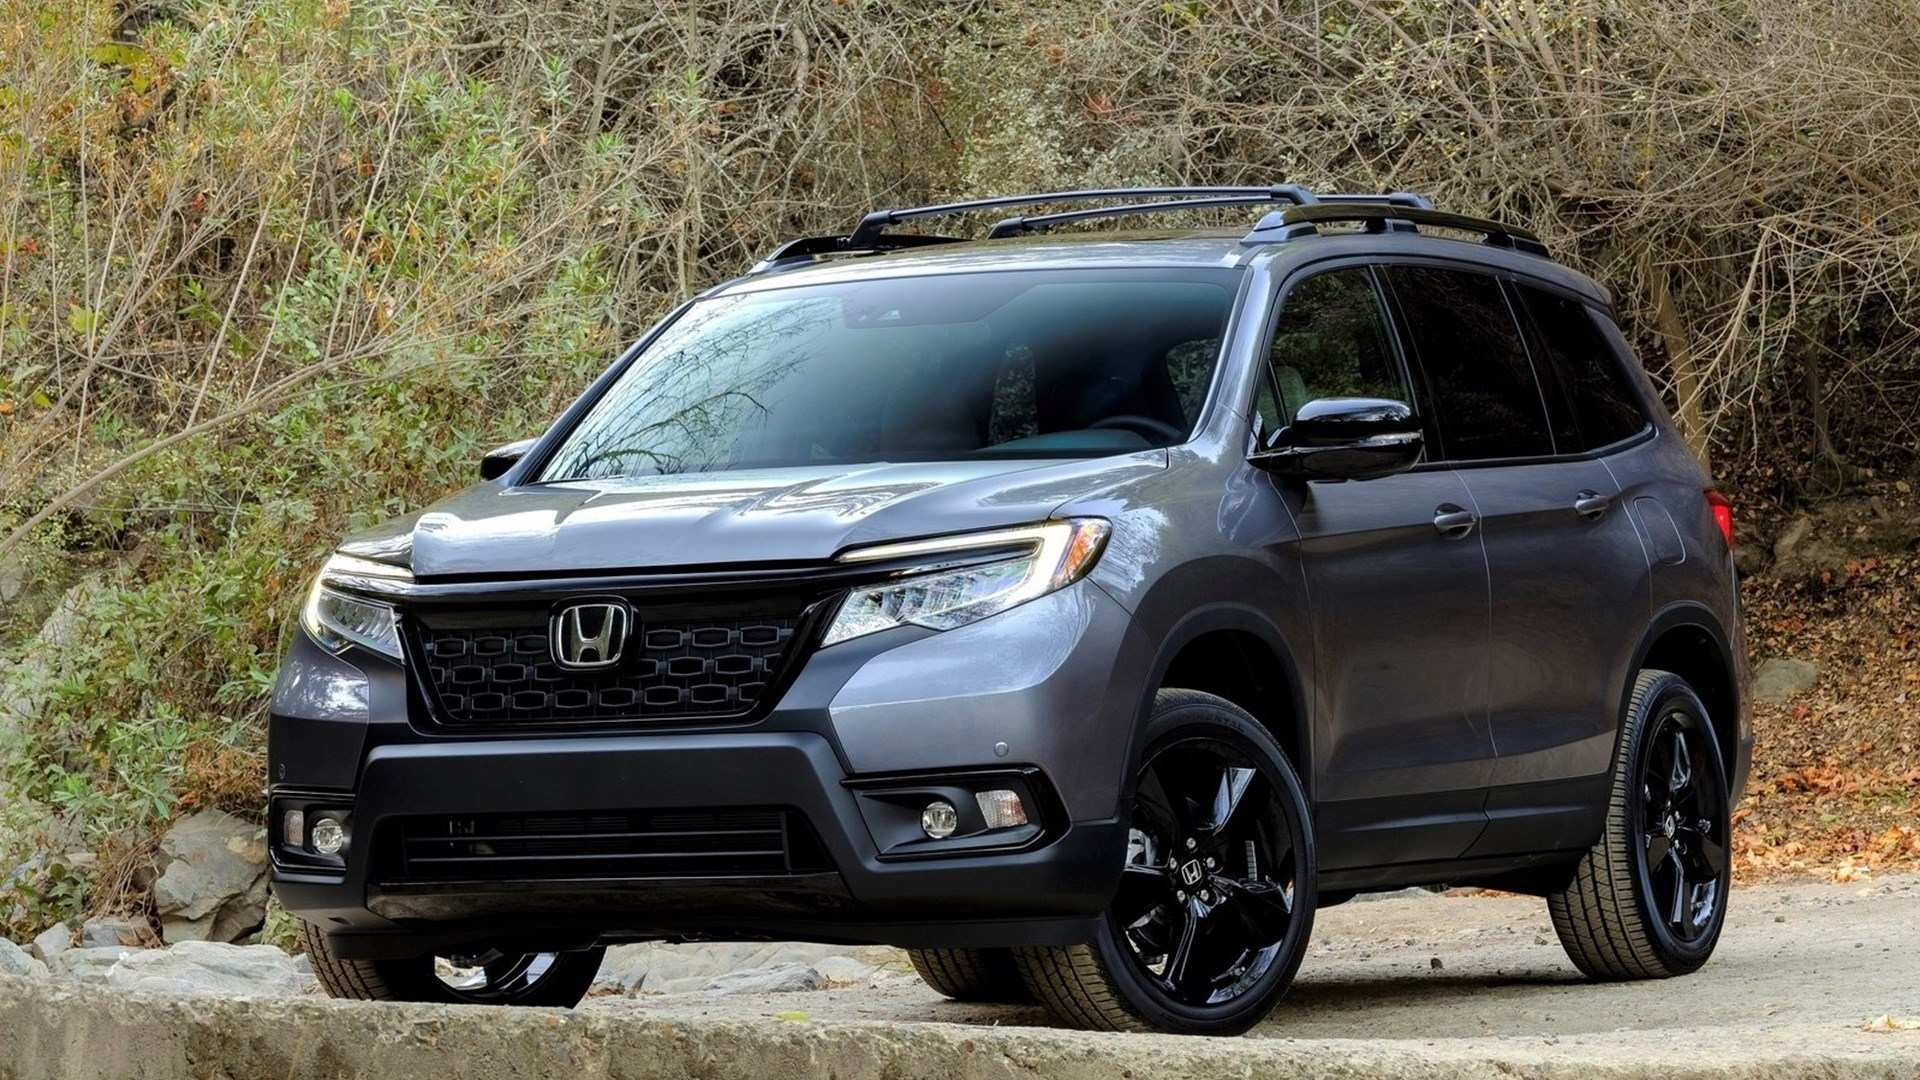 32 All New Honda Passport 2020 Price Specs